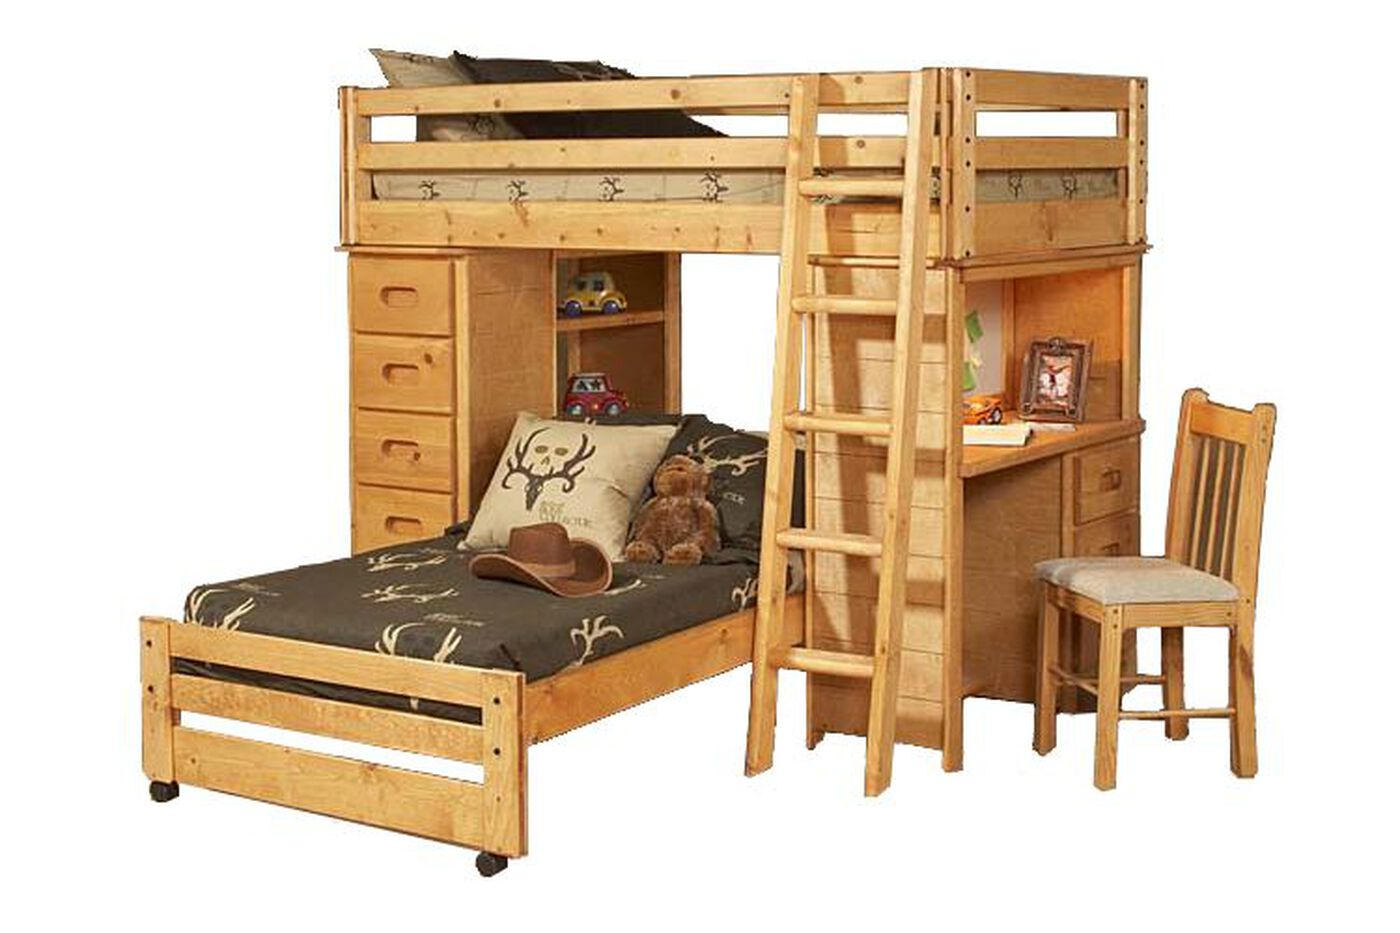 Bunk Beds Tulsa Furniture Oklahoma For Sale